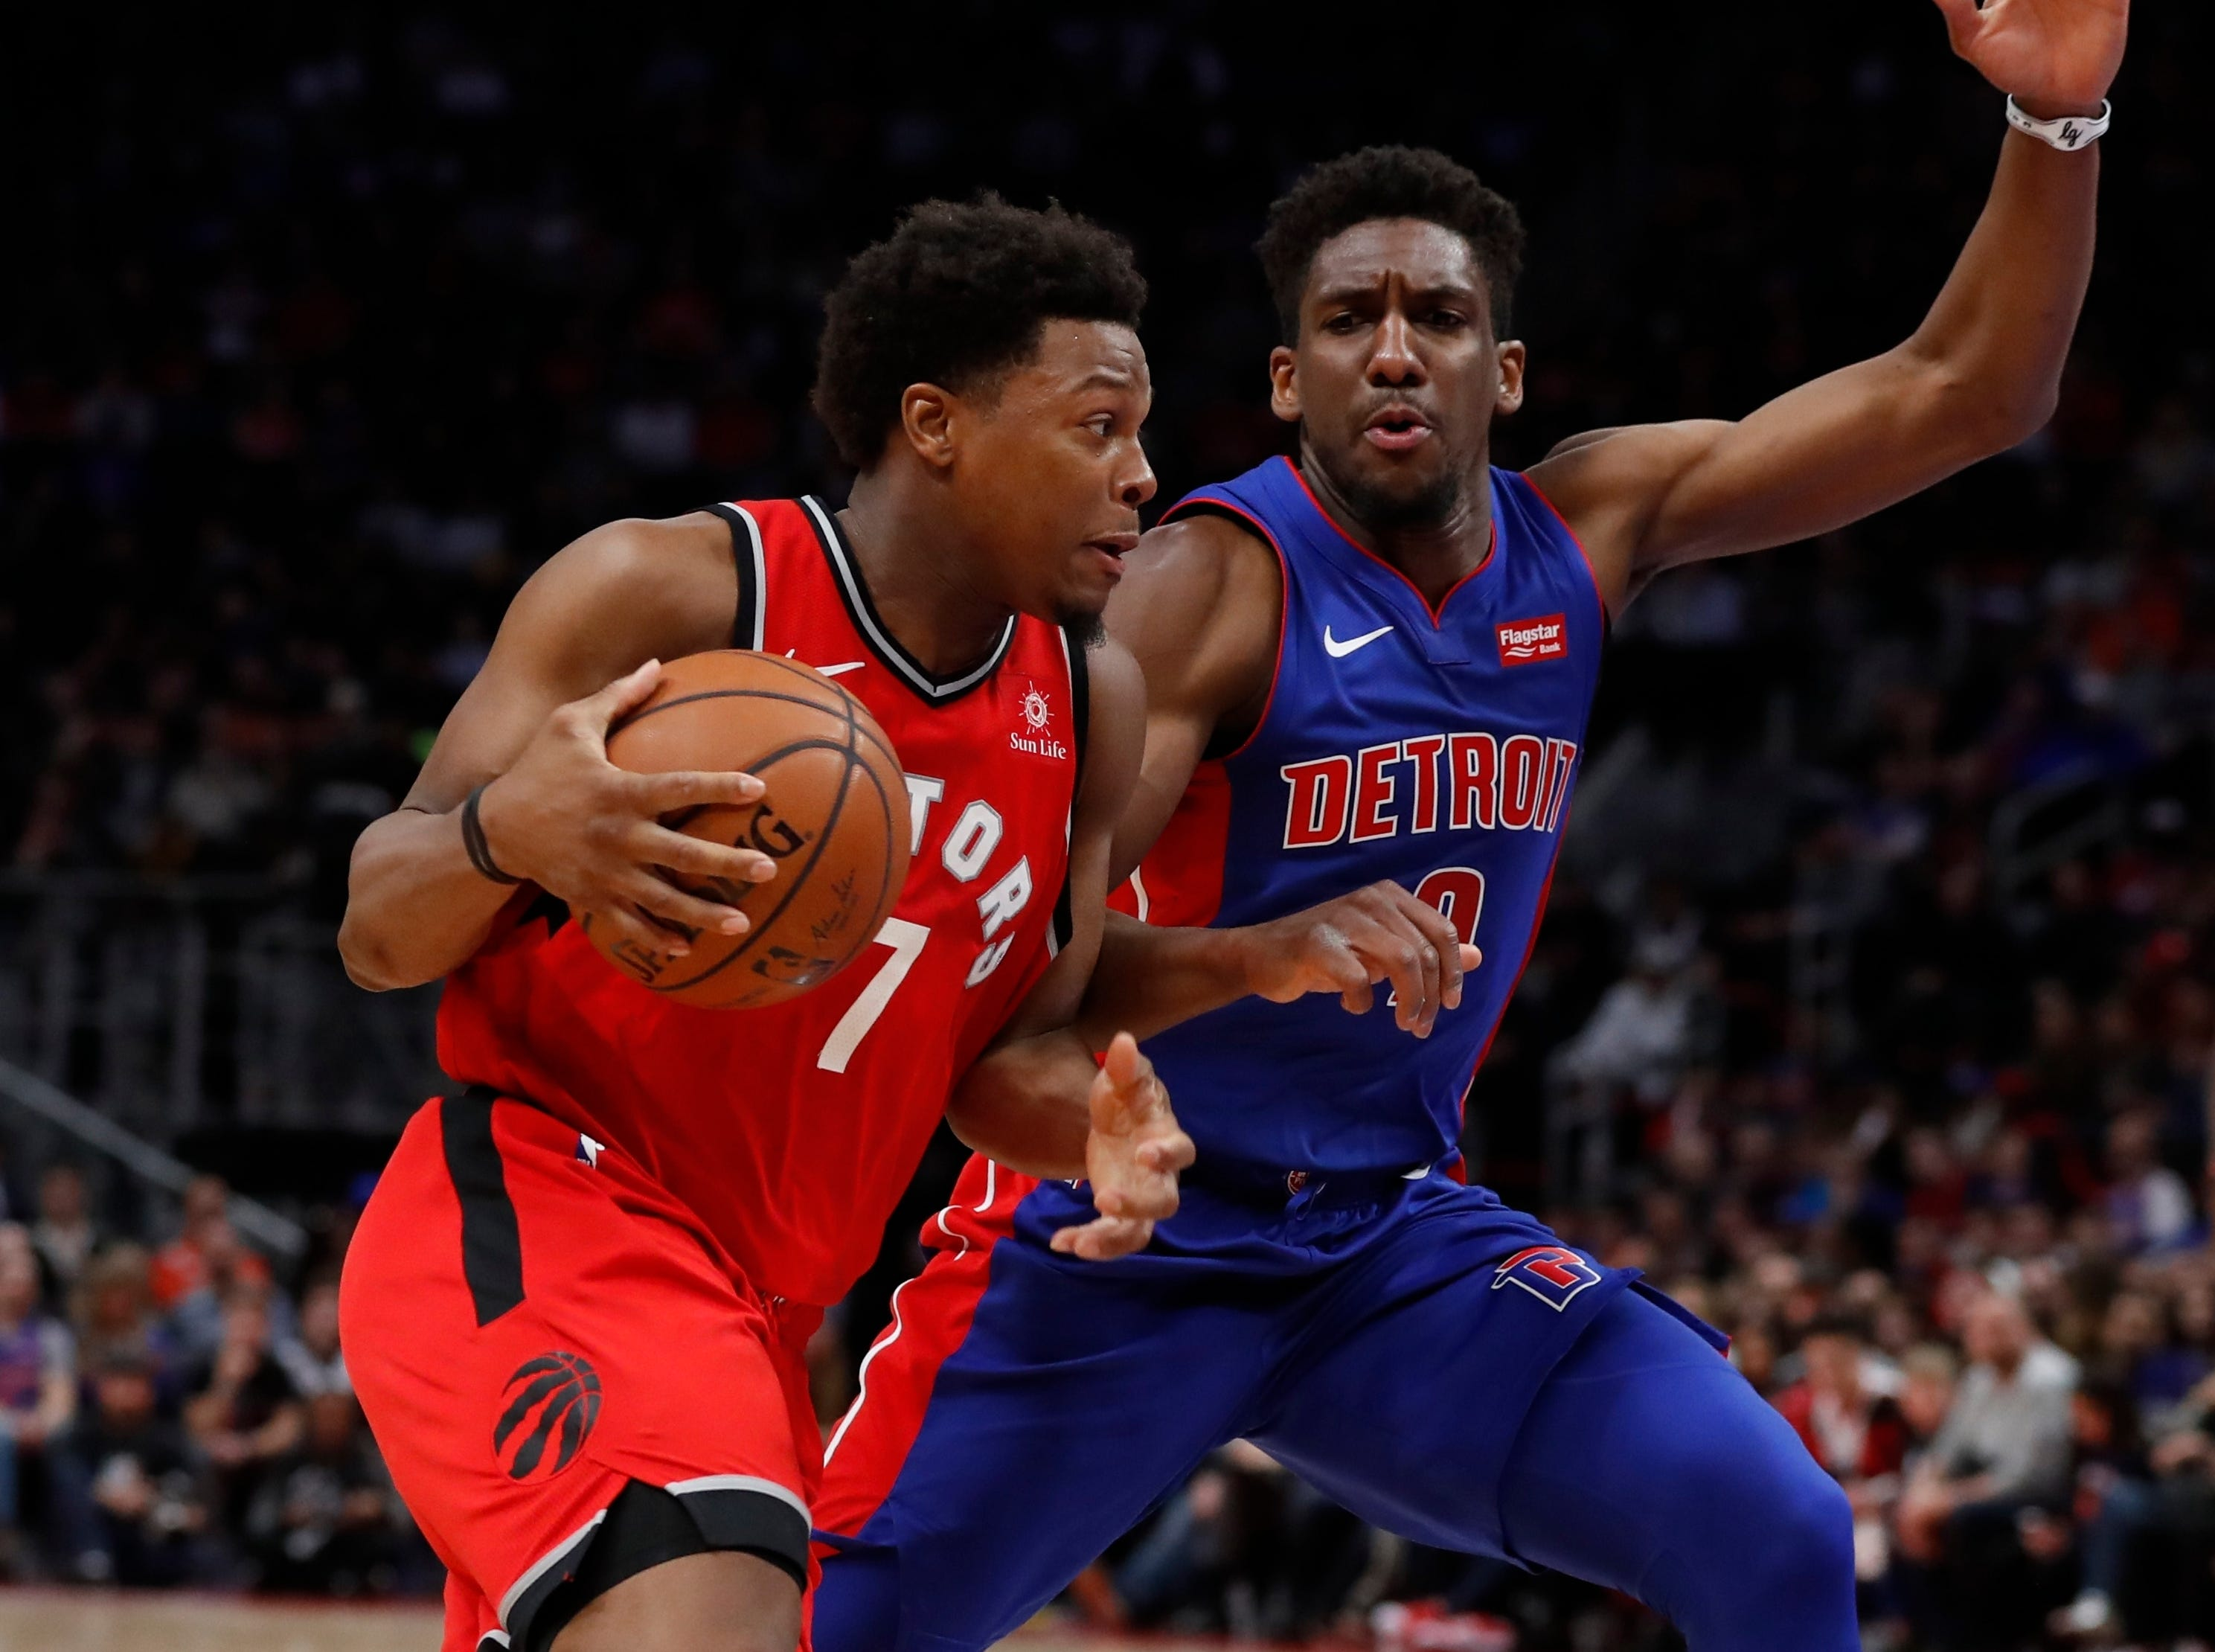 Toronto Raptors guard Kyle Lowry (7) drives on Detroit Pistons guard Langston Galloway (9) during the second half.